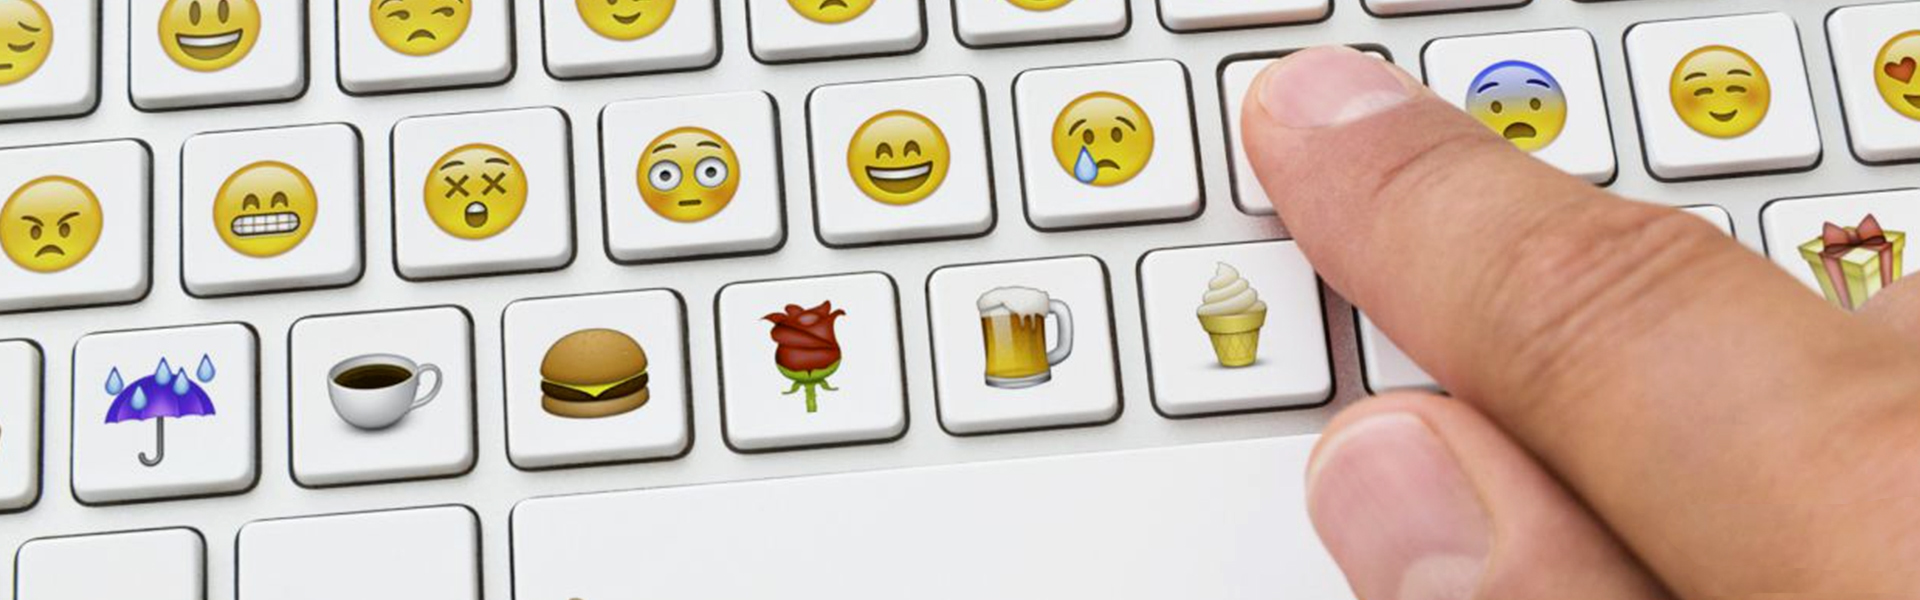 Free emoticons for your website, forum, blog